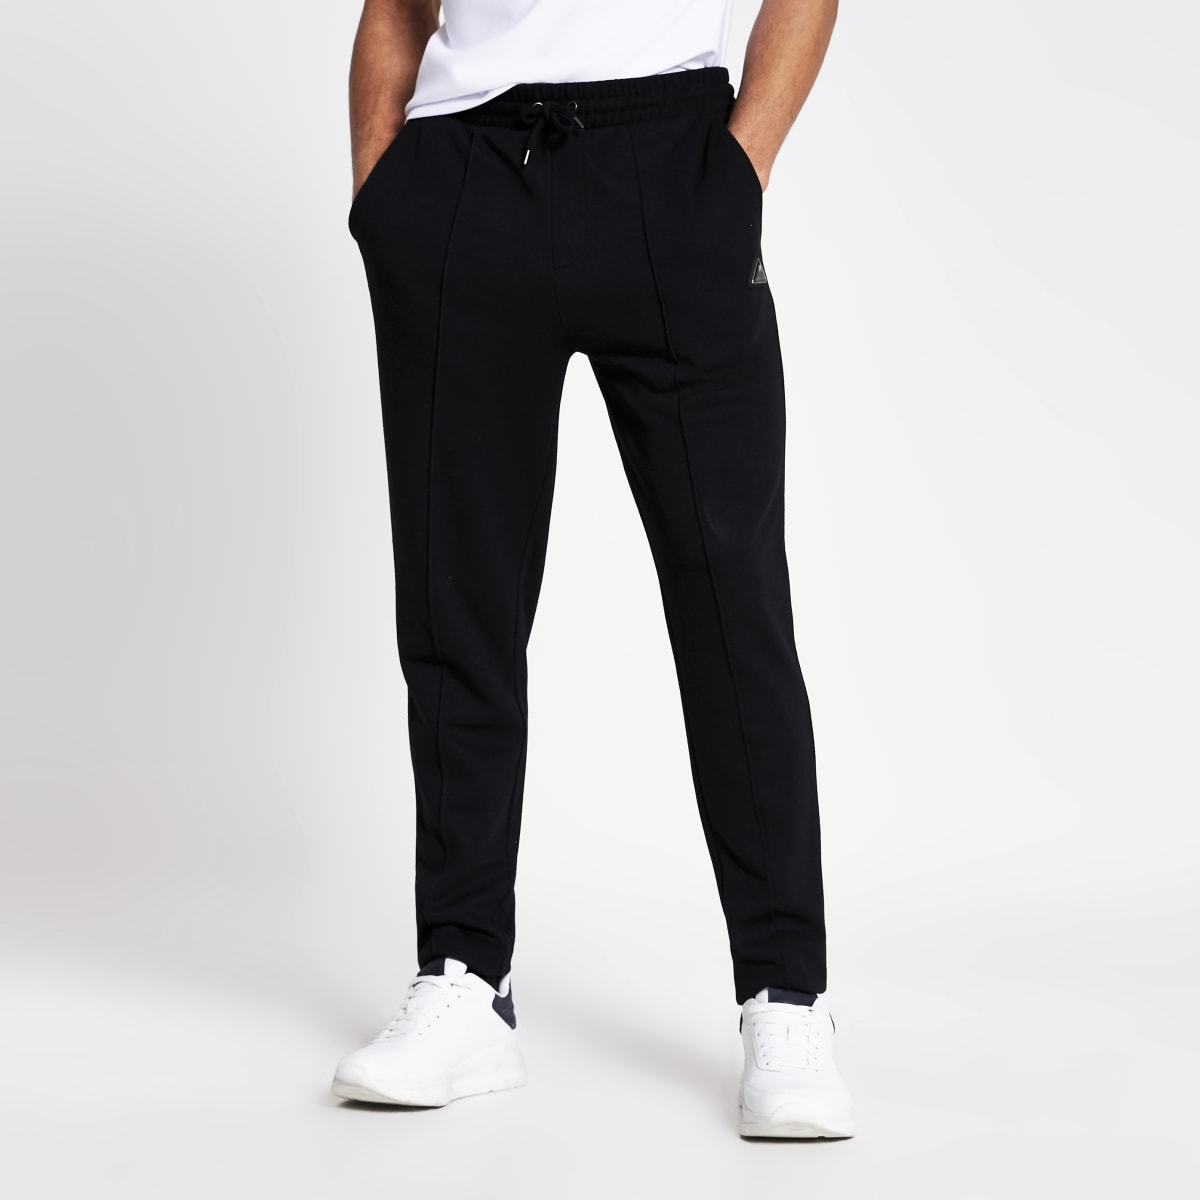 MCMLX - Zwarte slim-fit piqué joggingbroek